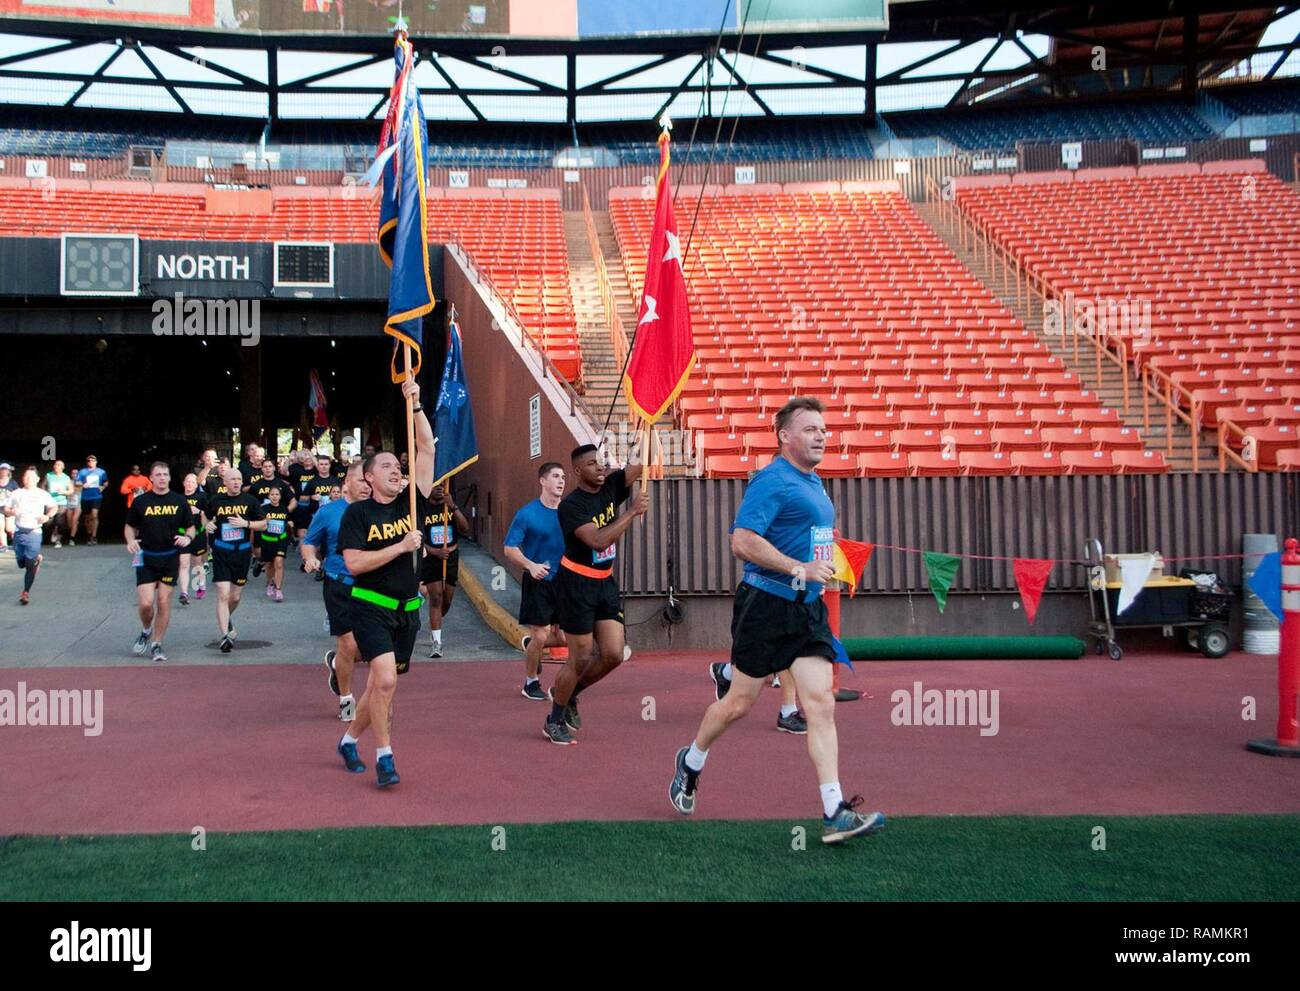 Aloha Stadium Stock Photos & Aloha Stadium Stock Images - Alamy